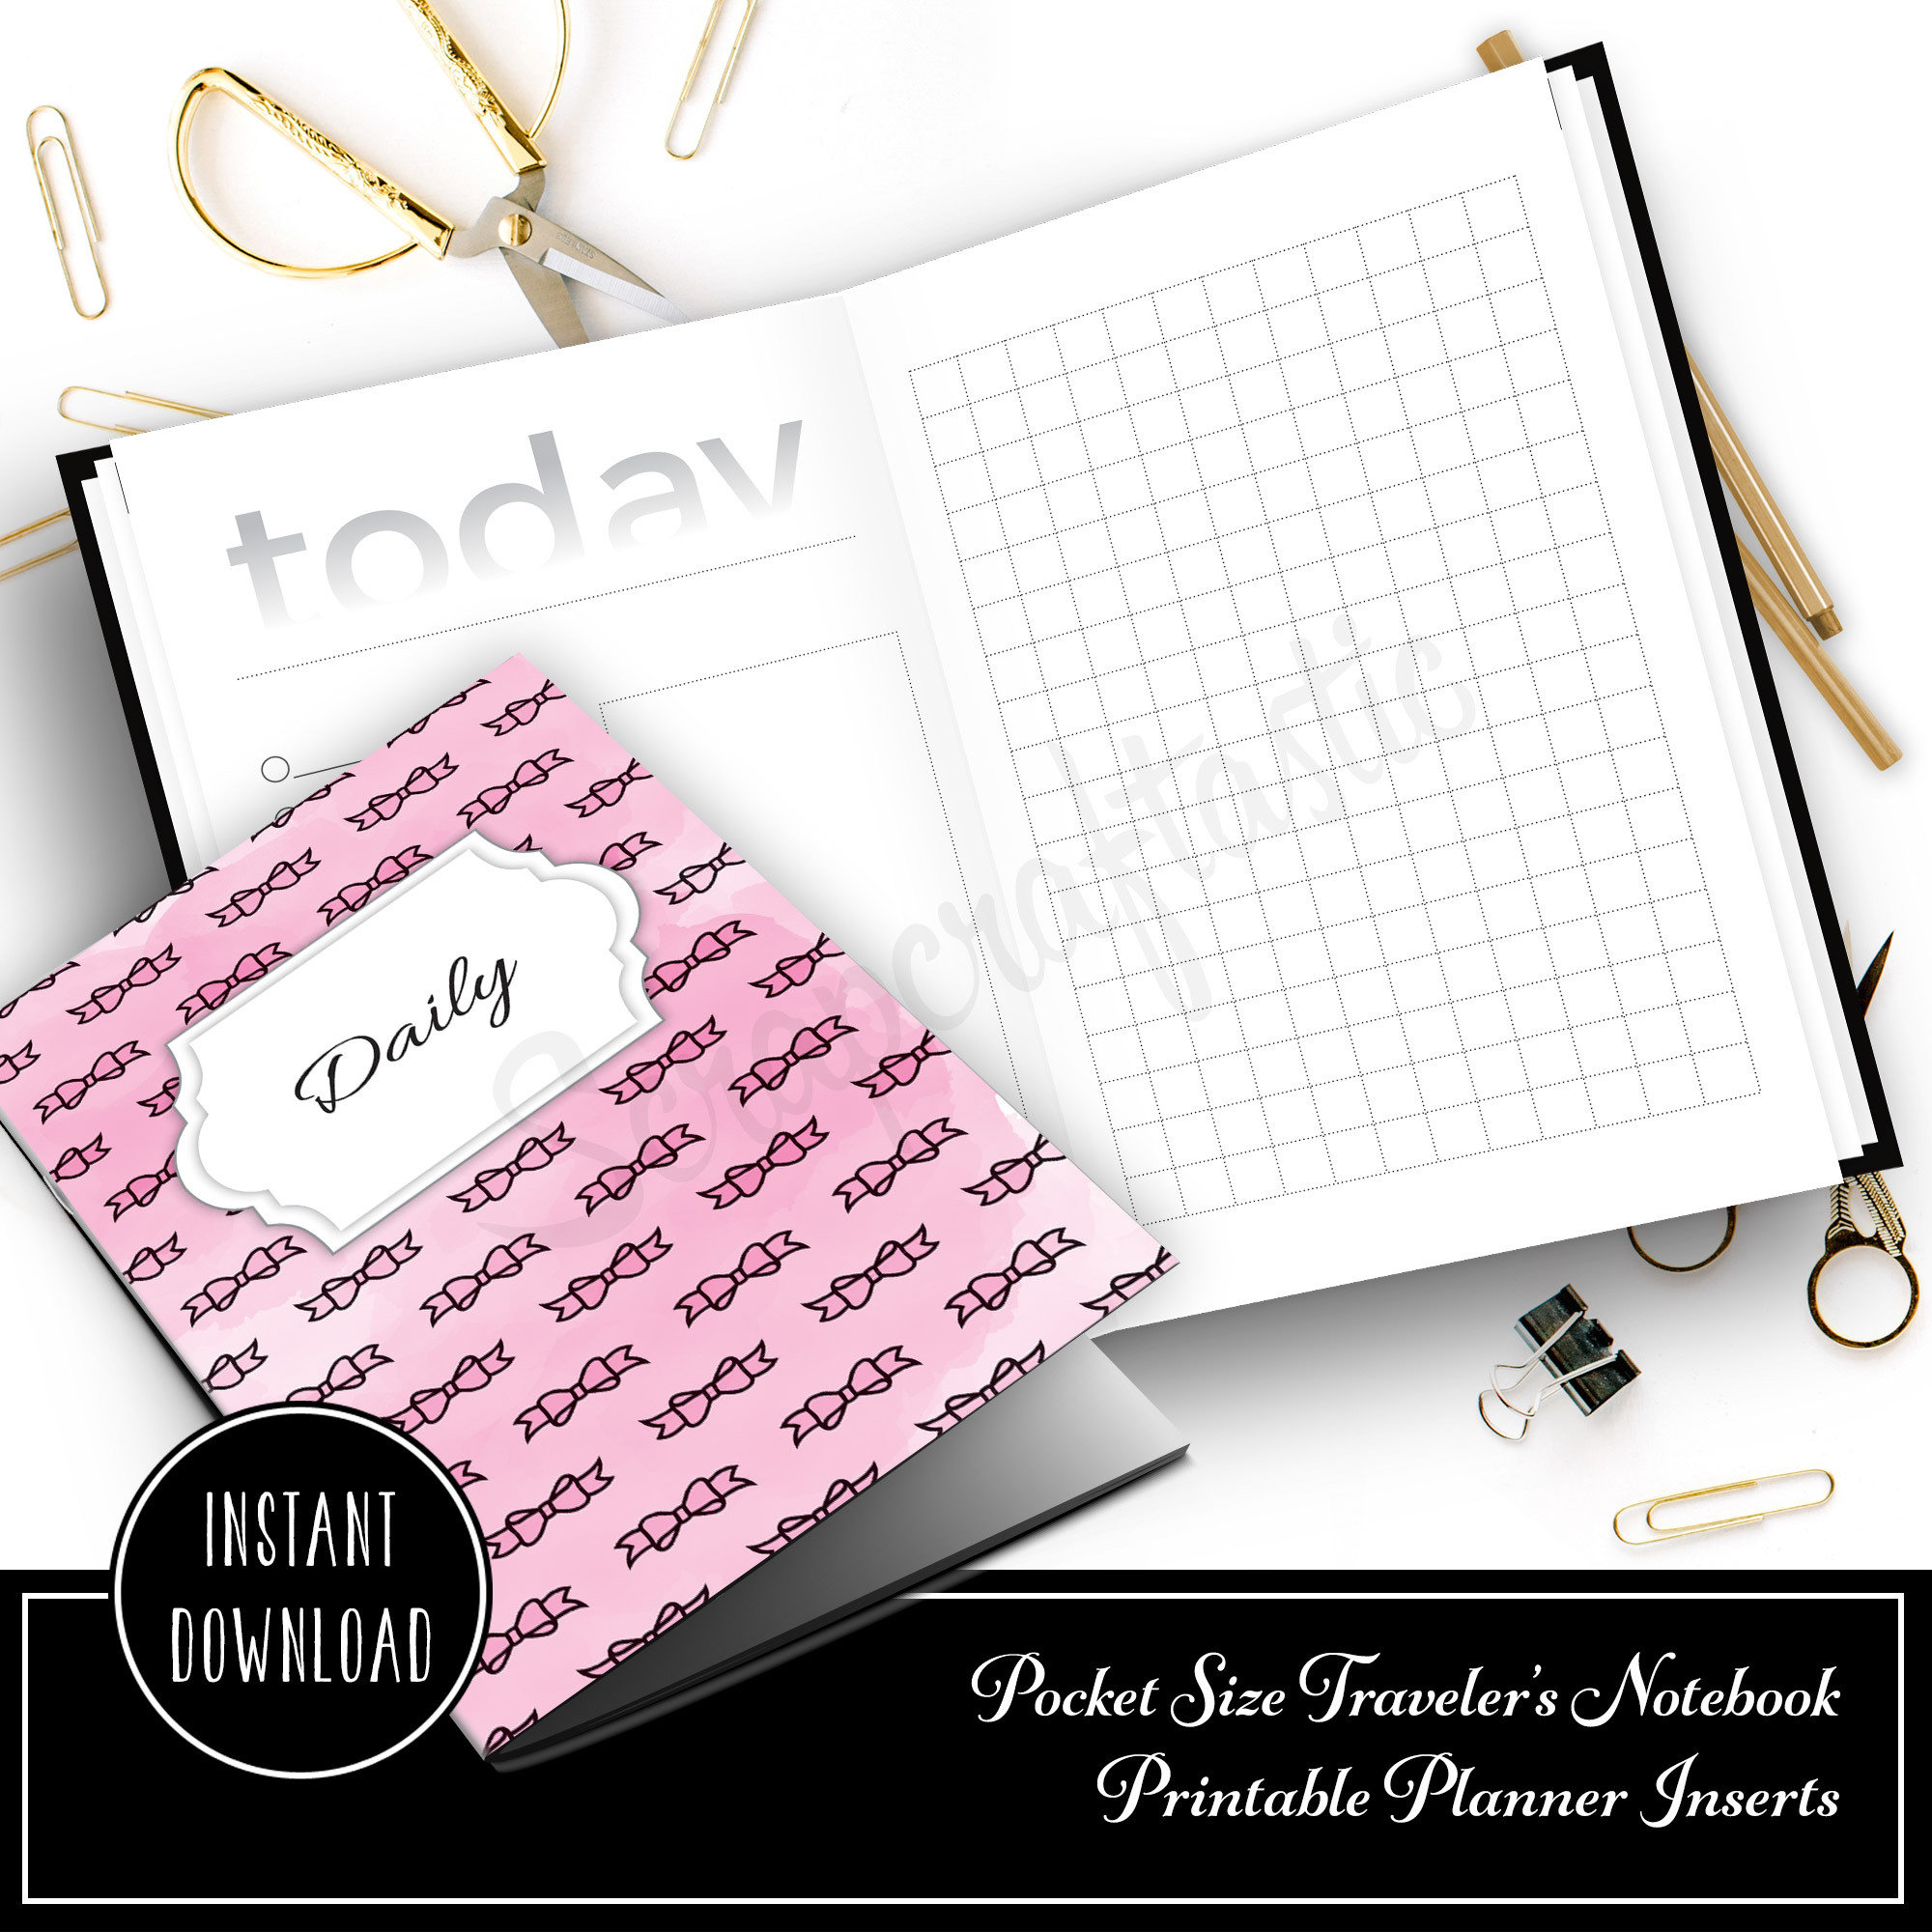 Daily Lists, Column and Grid Pocket Size Traveler's Notebook Printable Inserts 10021